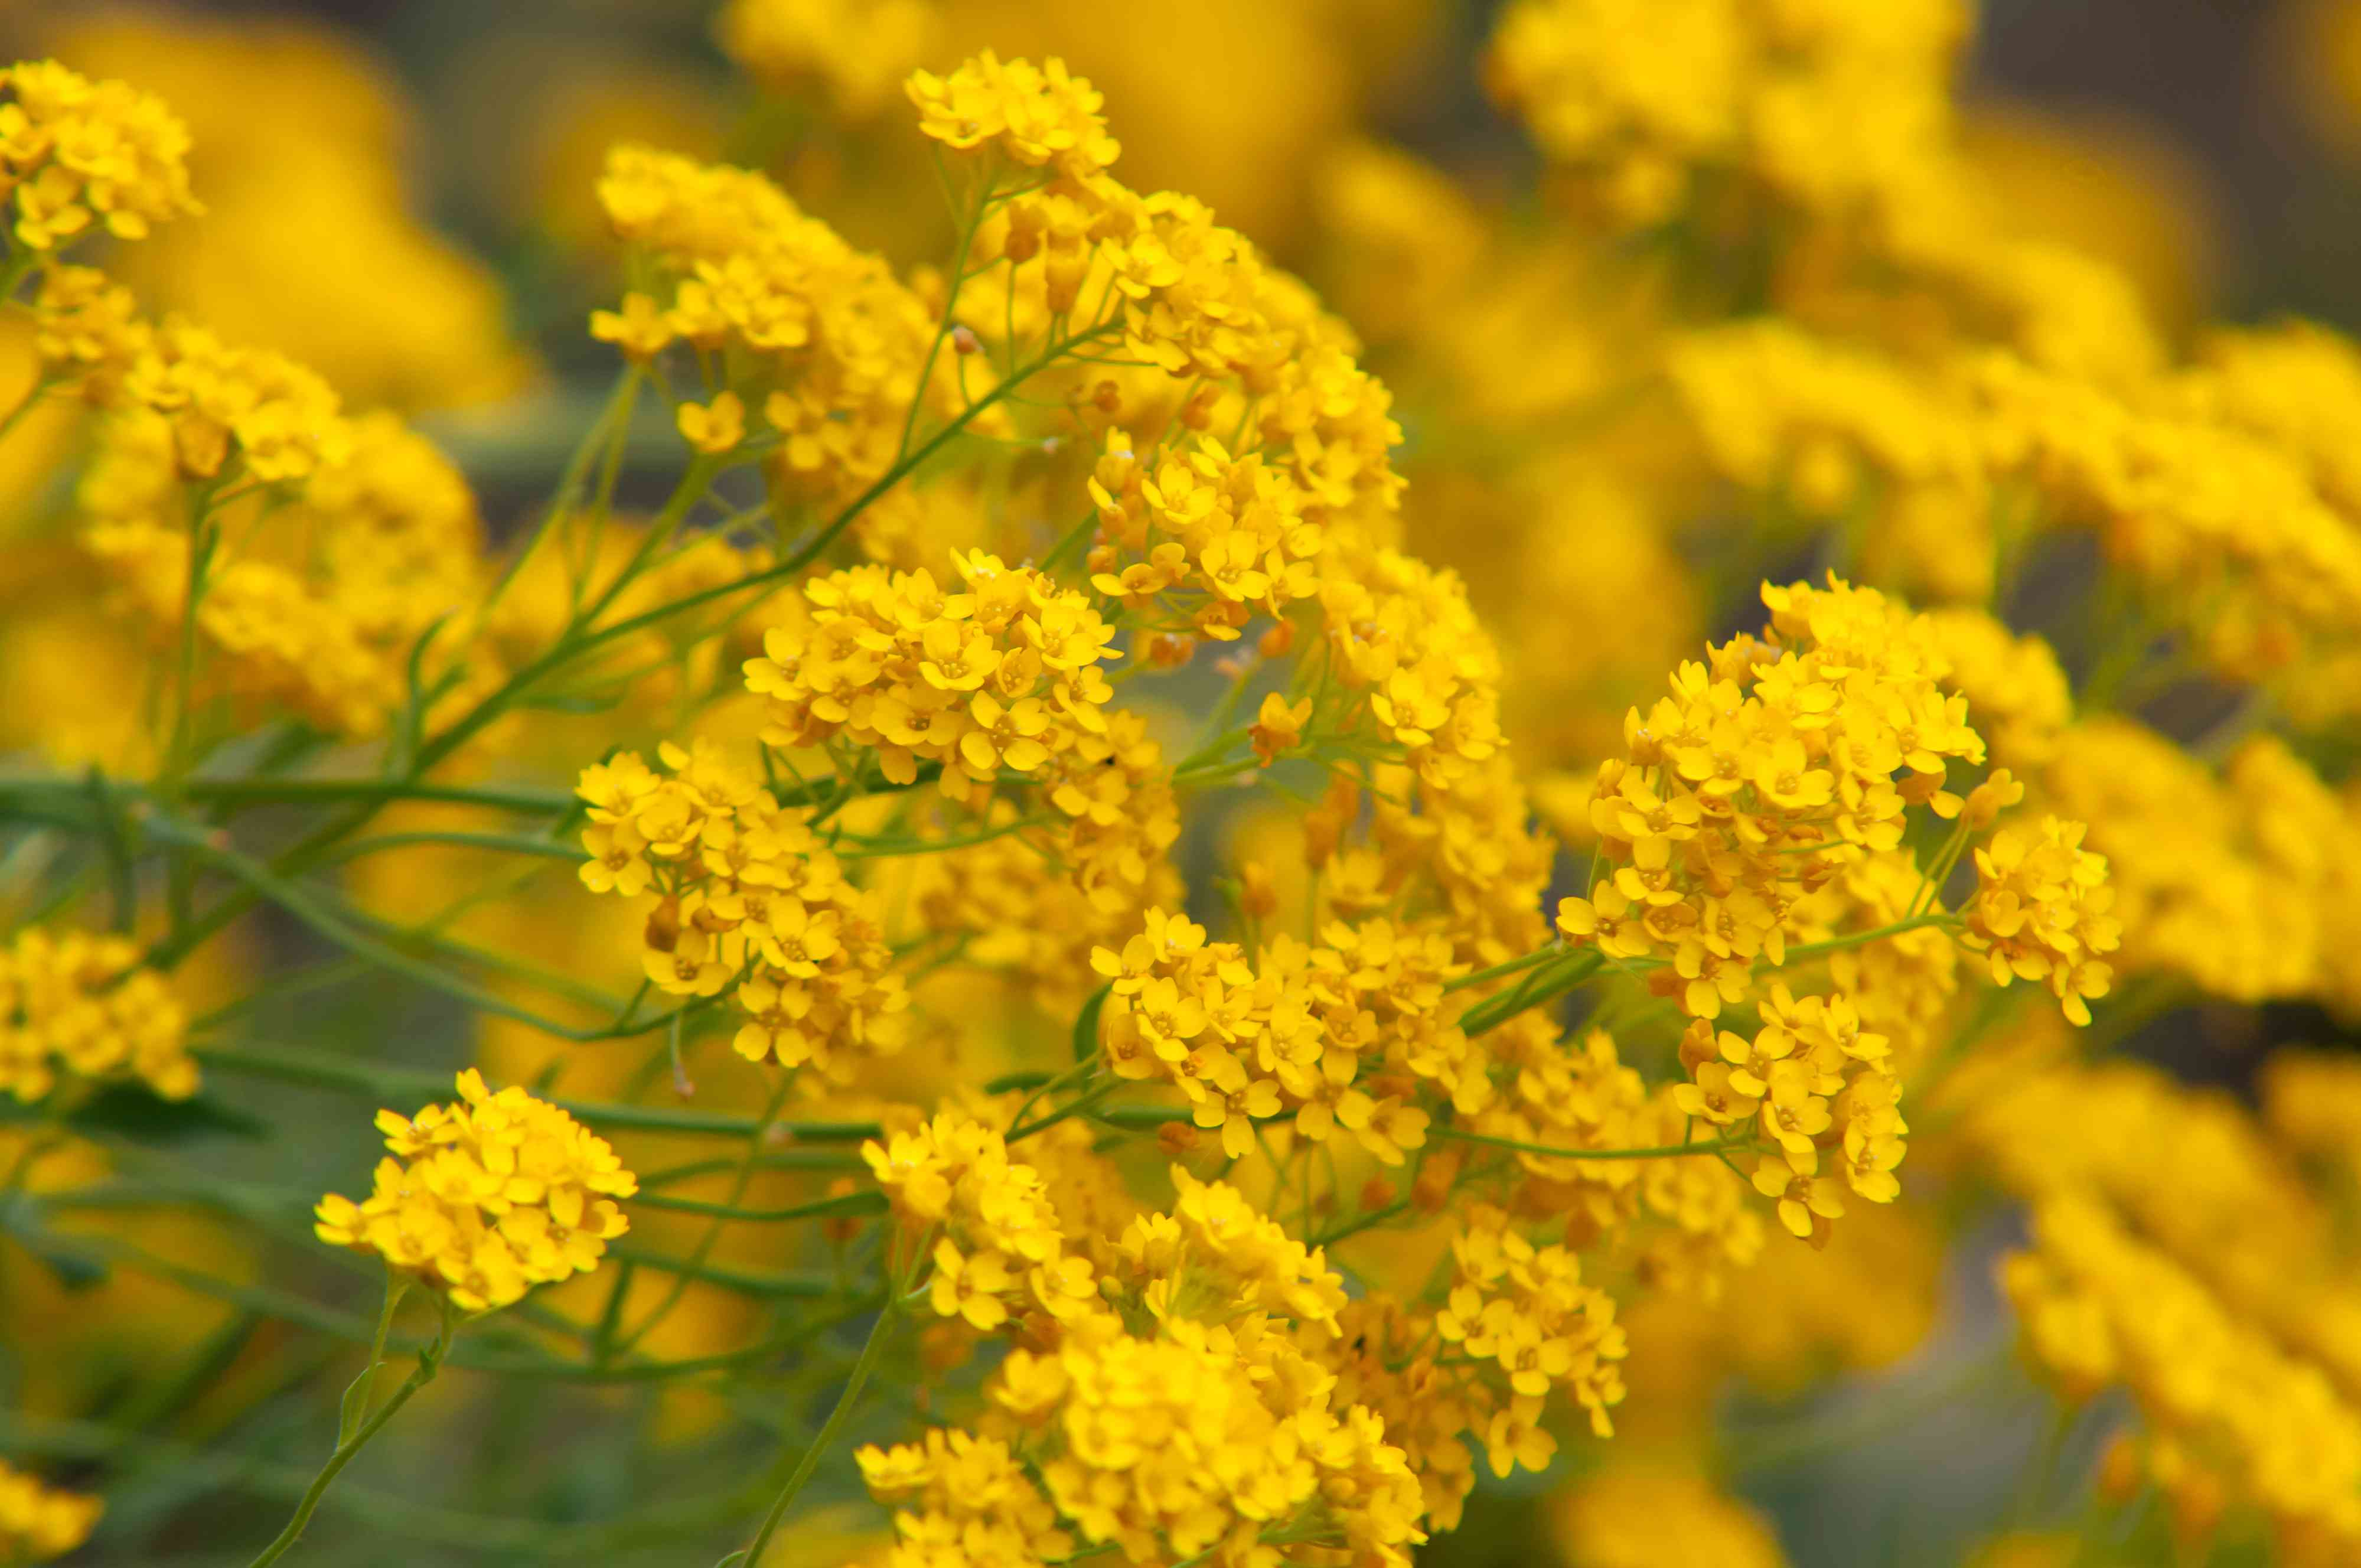 Yellow alyssum plant with clustered yellow flowers on extended stems